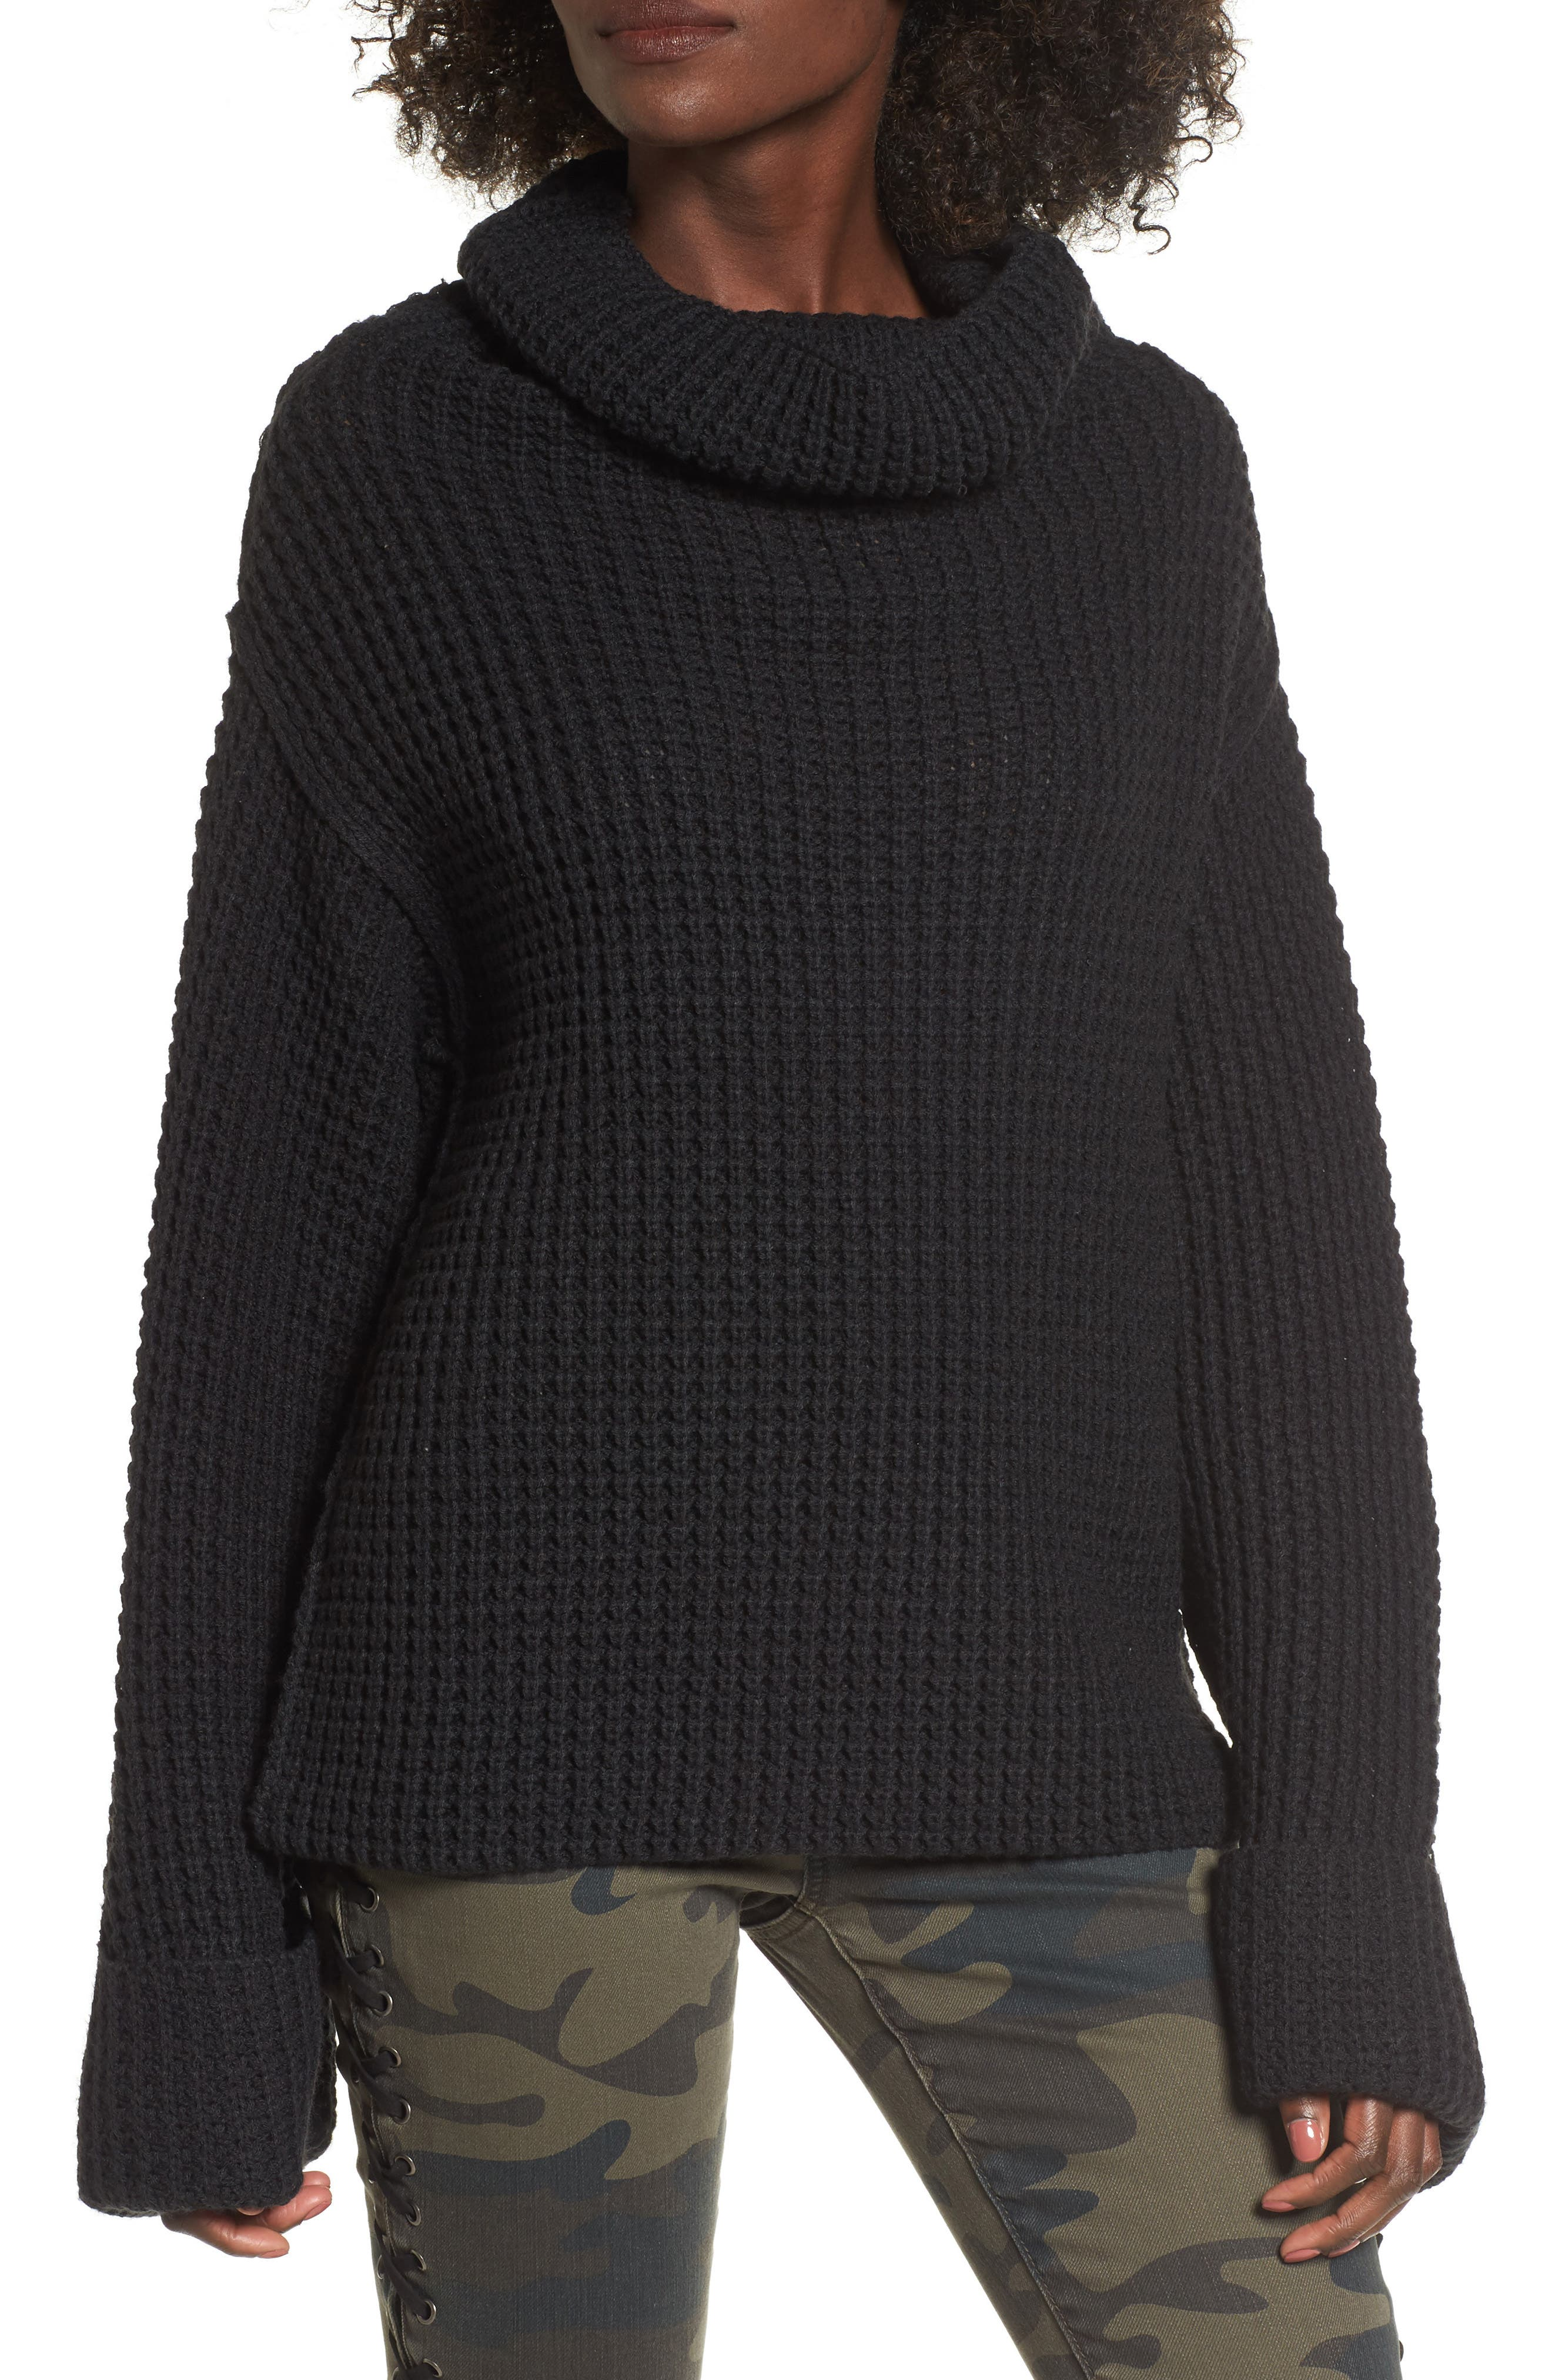 Cowl Neck Thermal Stitch Sweater,                         Main,                         color, 001